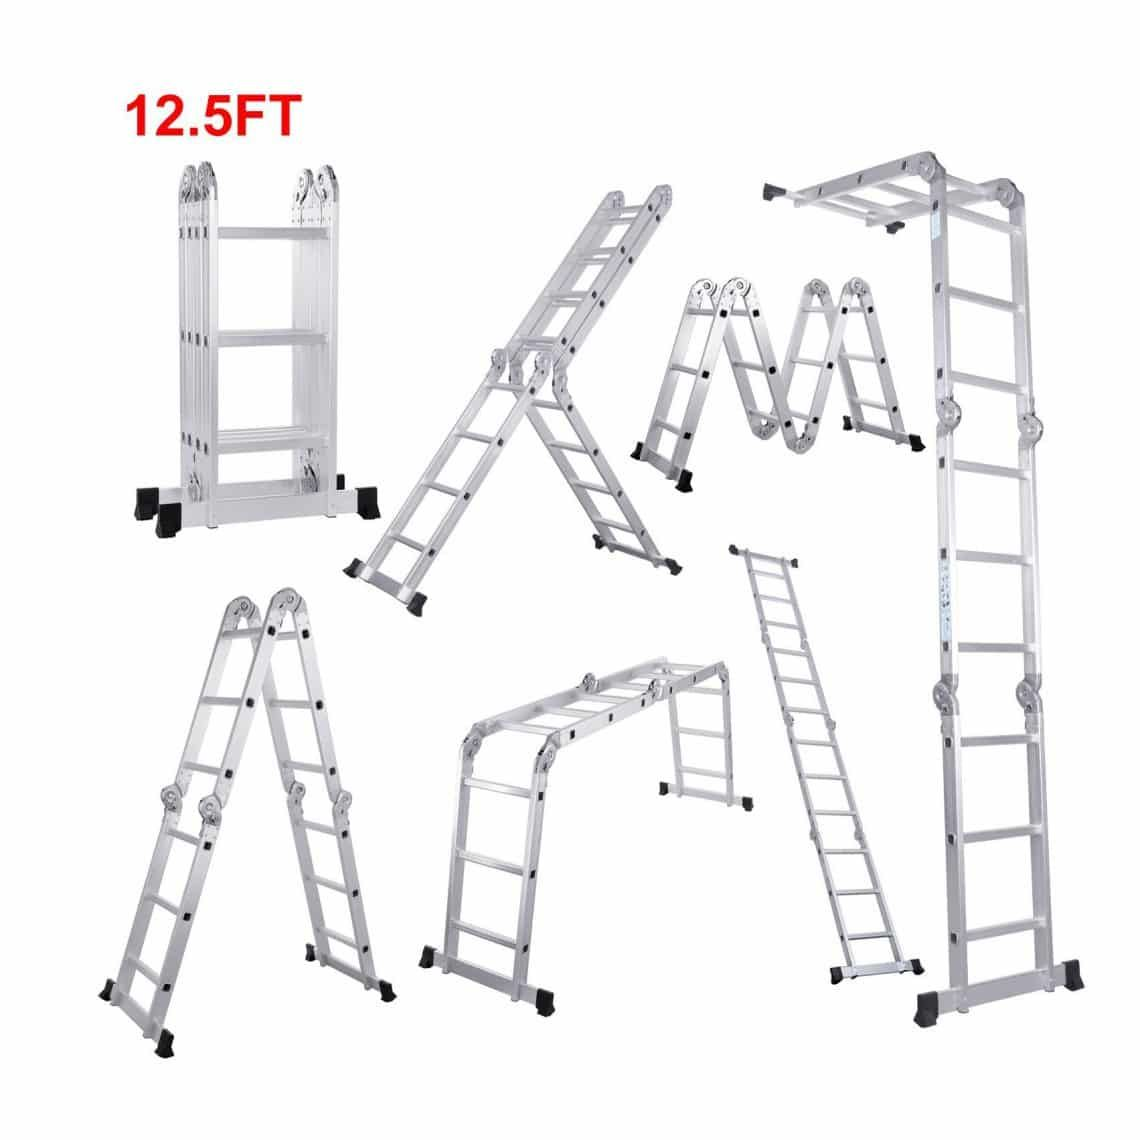 Scaffold Heavy Duty Multi Purpose Folding Ladder Extendable Platform Aluminum From Lifewit Multi Purpose Ladder Ladder Folding Ladder